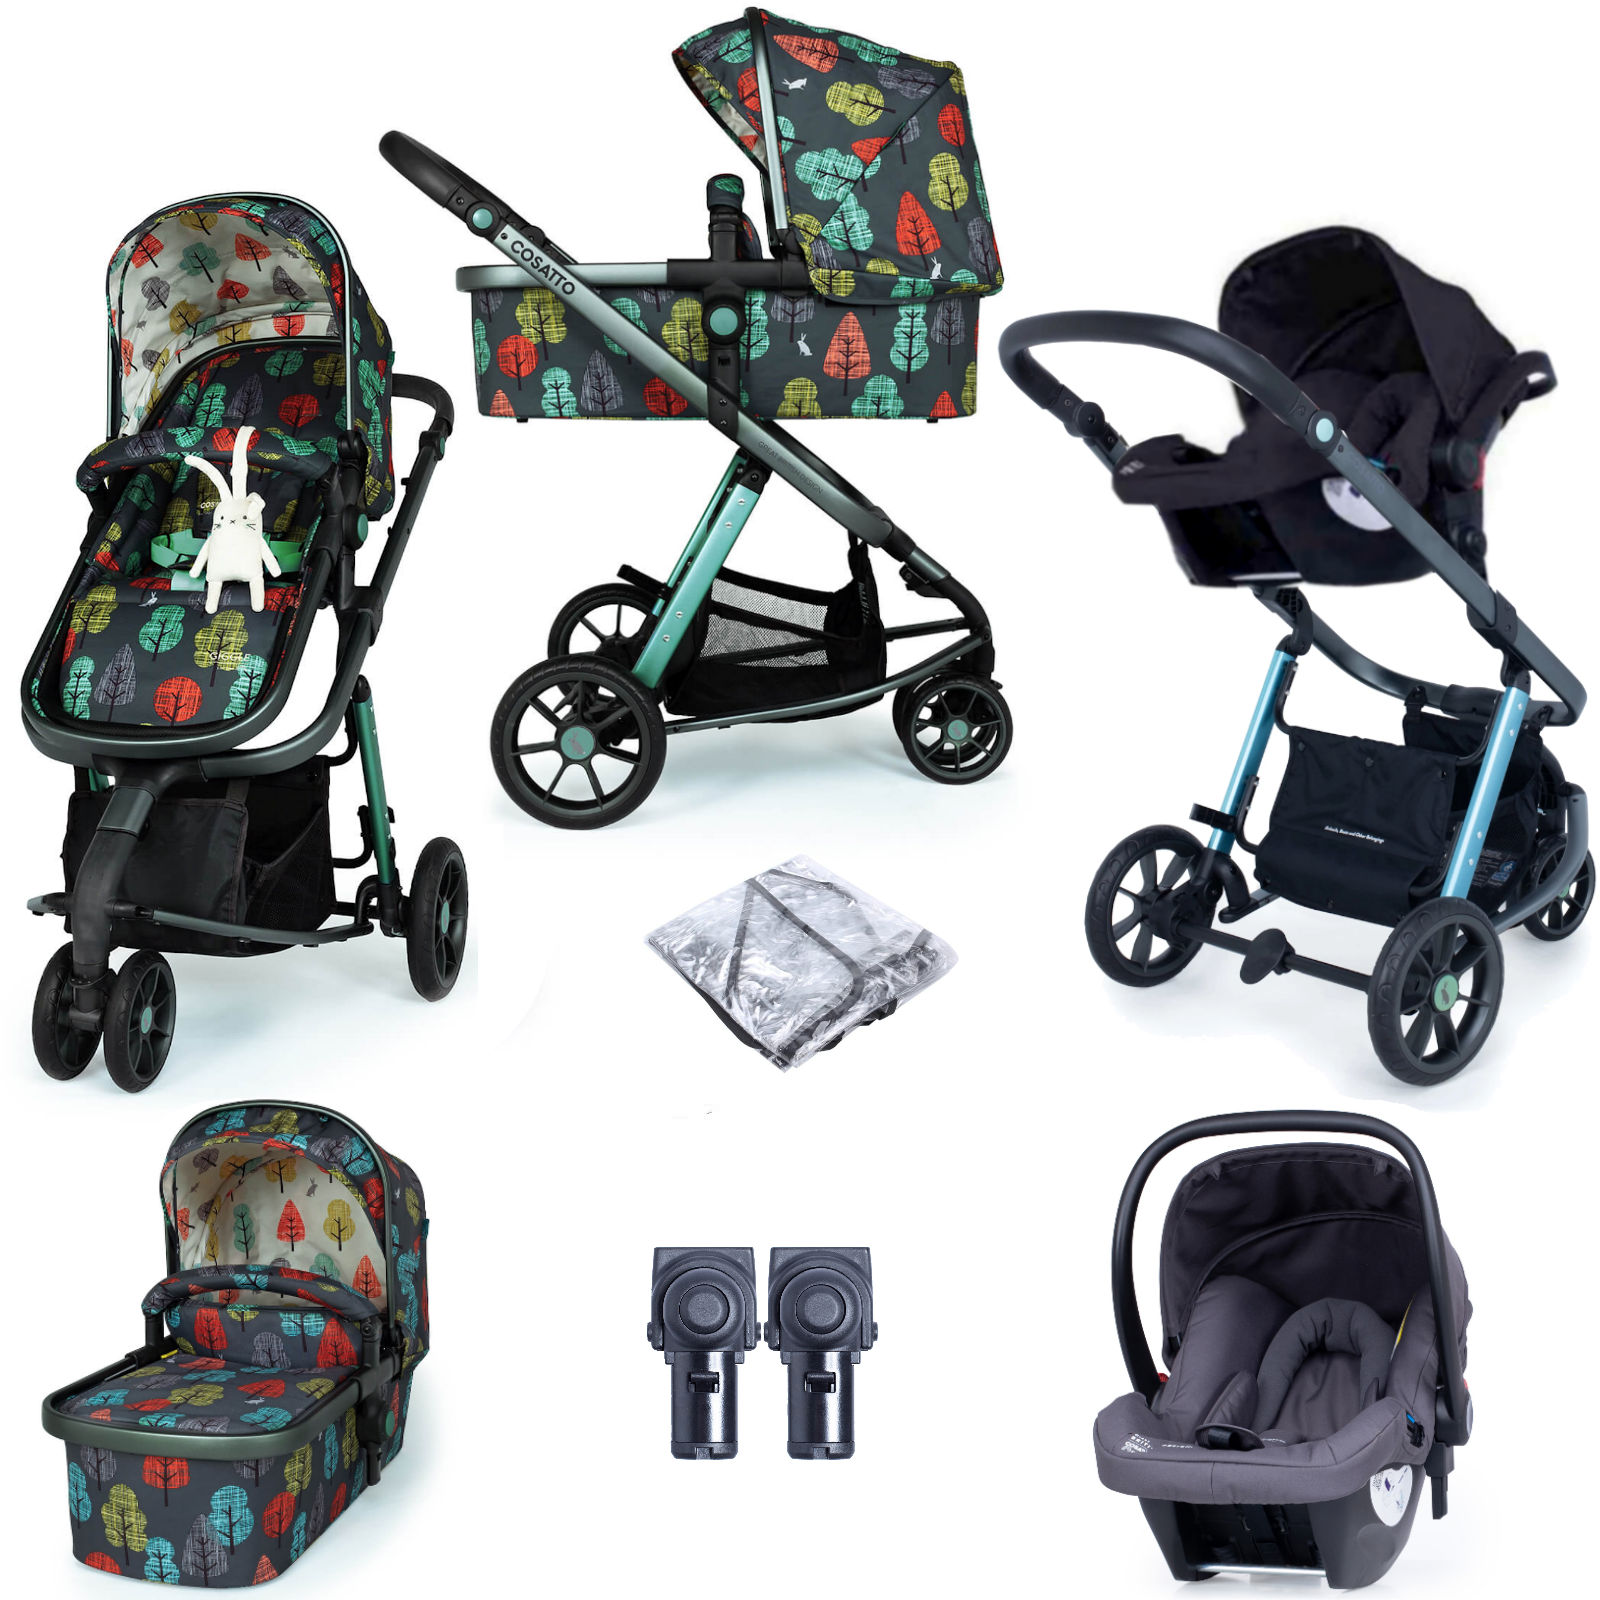 Cosatto Giggle 3 (Hold Car Seat) Travel System - Harewood